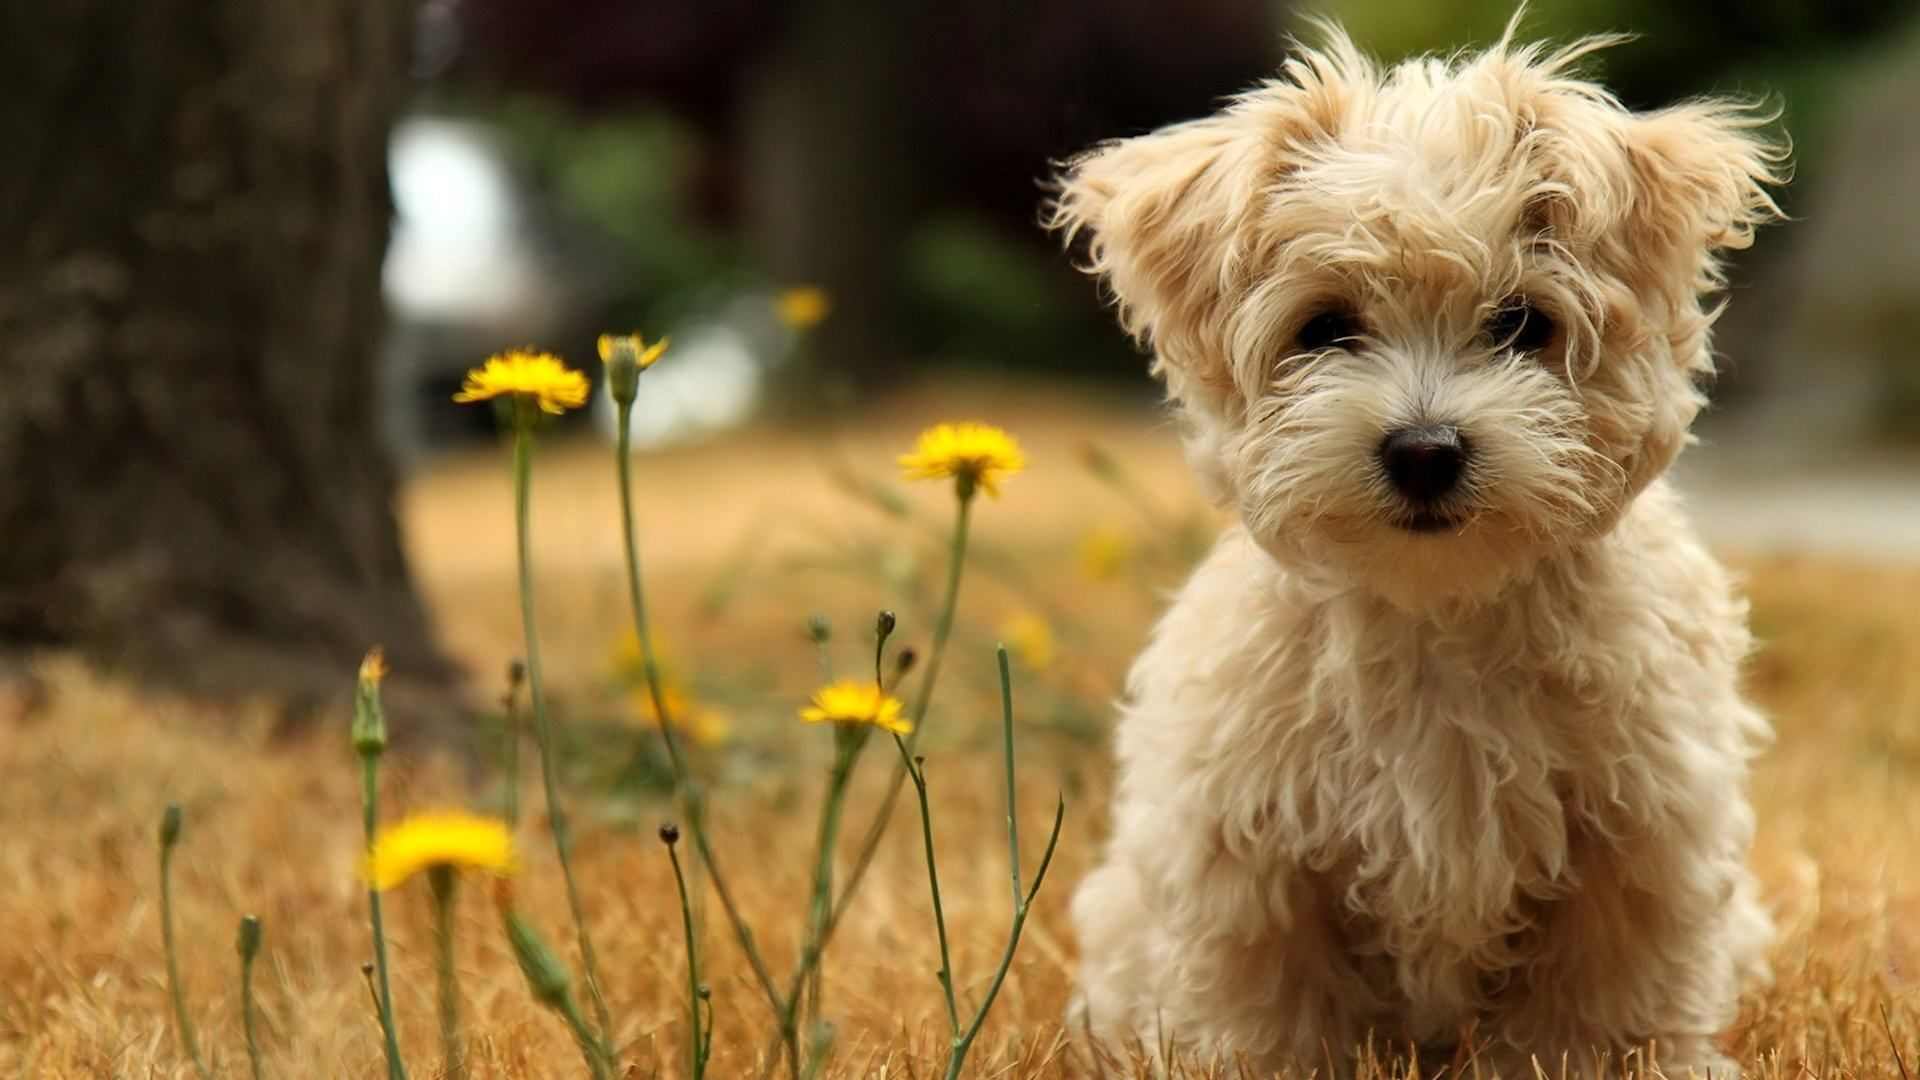 Download Hd Wallpapers Group 1600 1066 Hd Wallpaper For Pc 53 Wallpapers Adorable Wallpapers Bear Dog Breed Cute Puppy Wallpaper Teddy Bear Dog